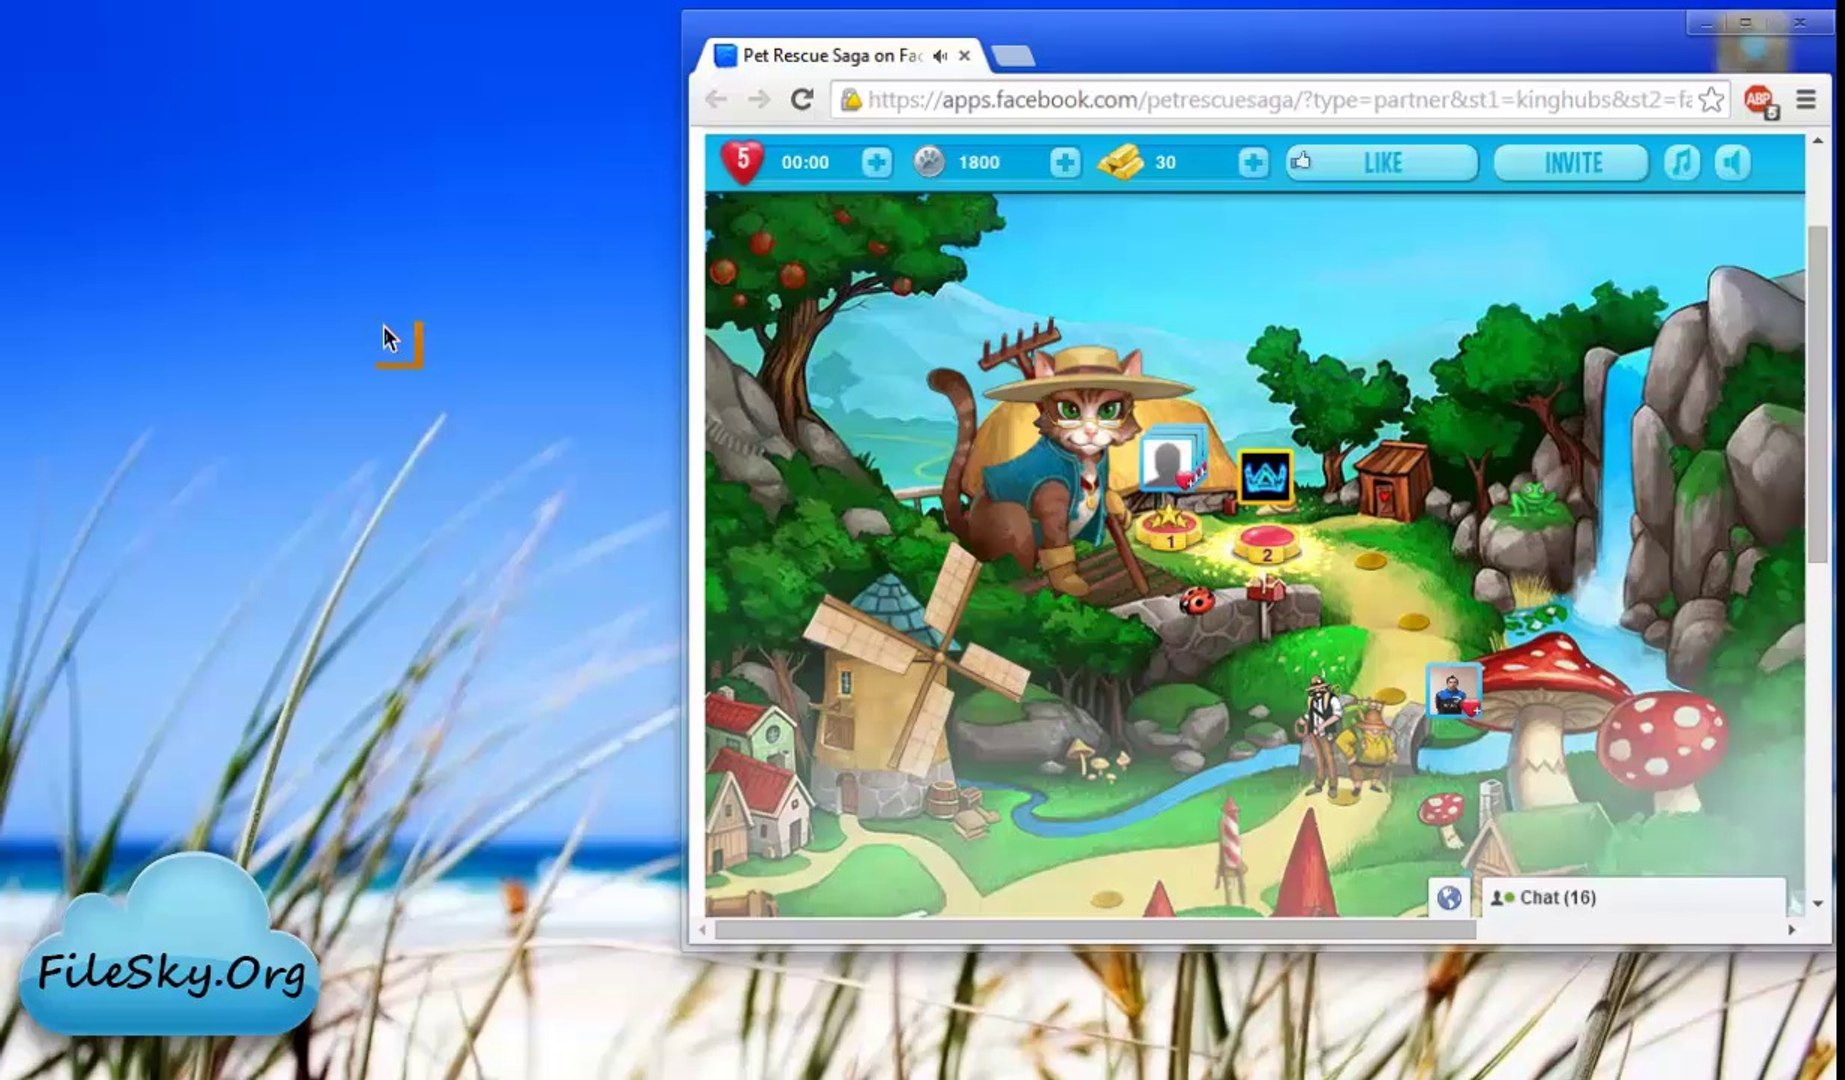 Pet Rescue Saga Cheats 2014 U.L.T.I.M.A.T.E / Pet Rescue Saga Hack + Pet Rescue Saga Coins / Cheats